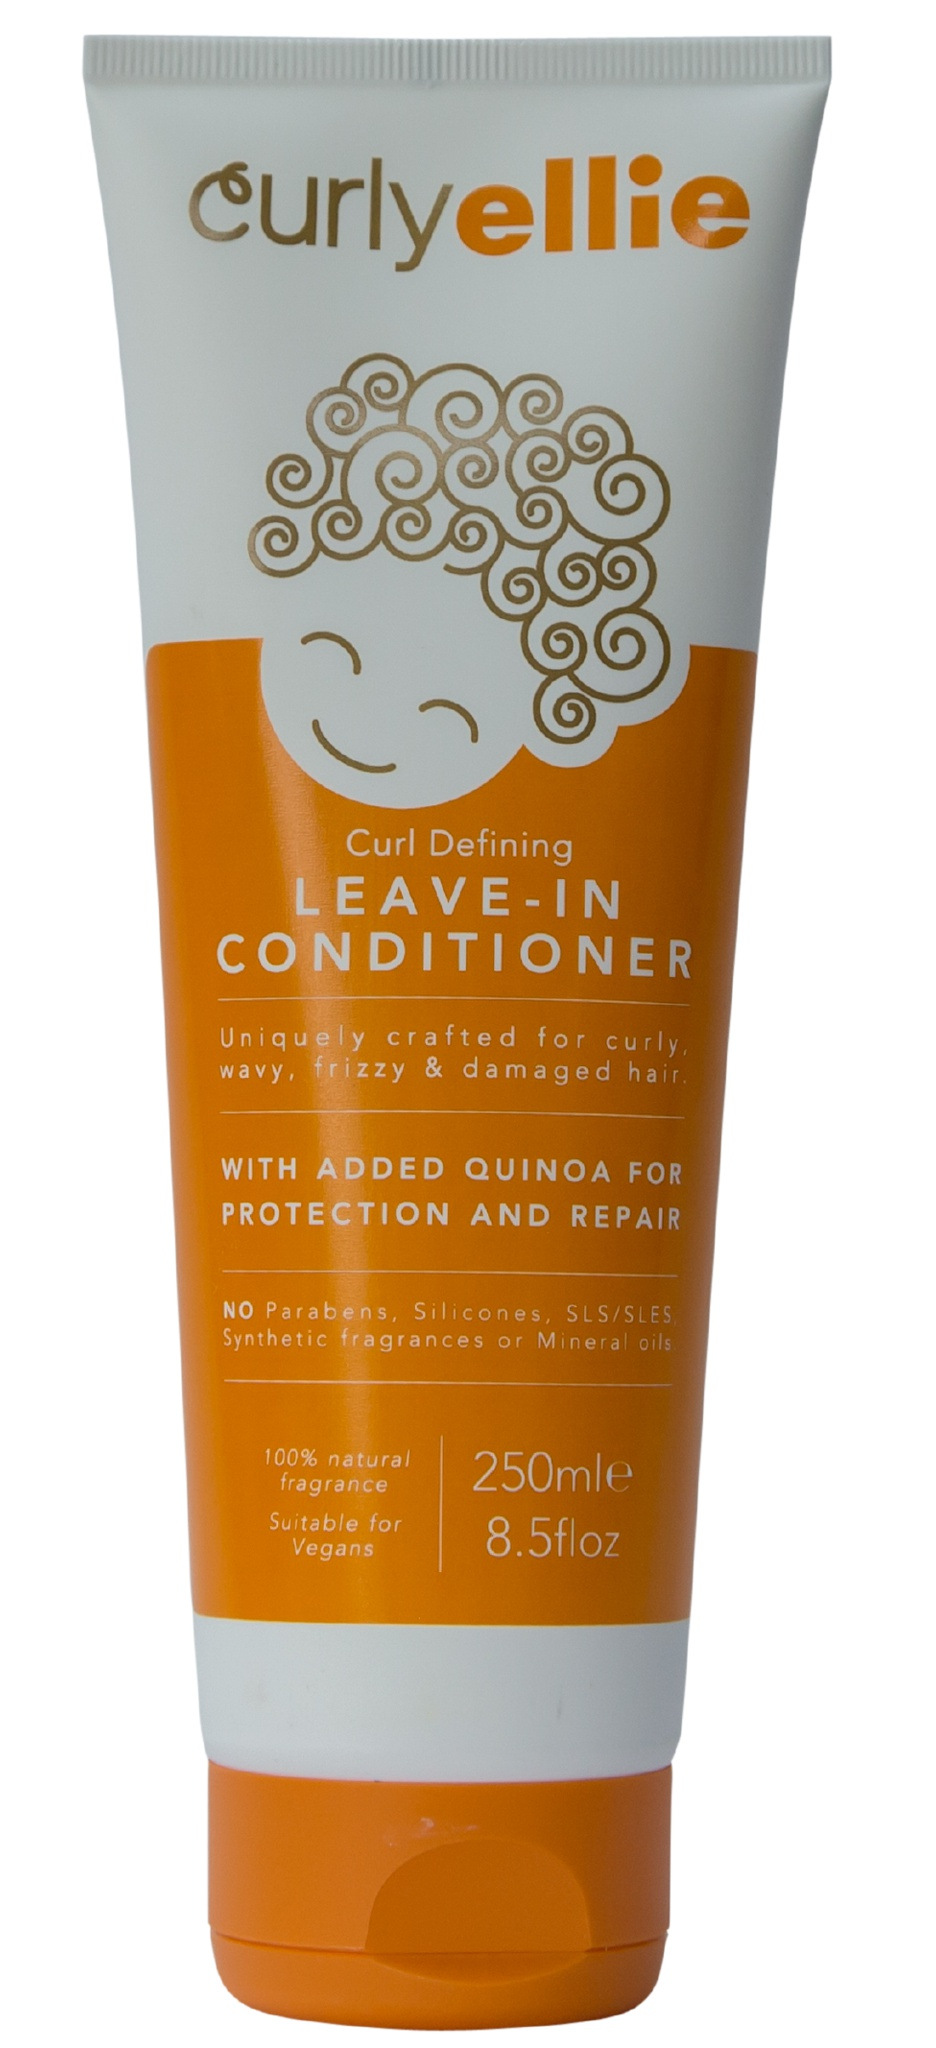 Curly Ellie Leave-In Conditioner